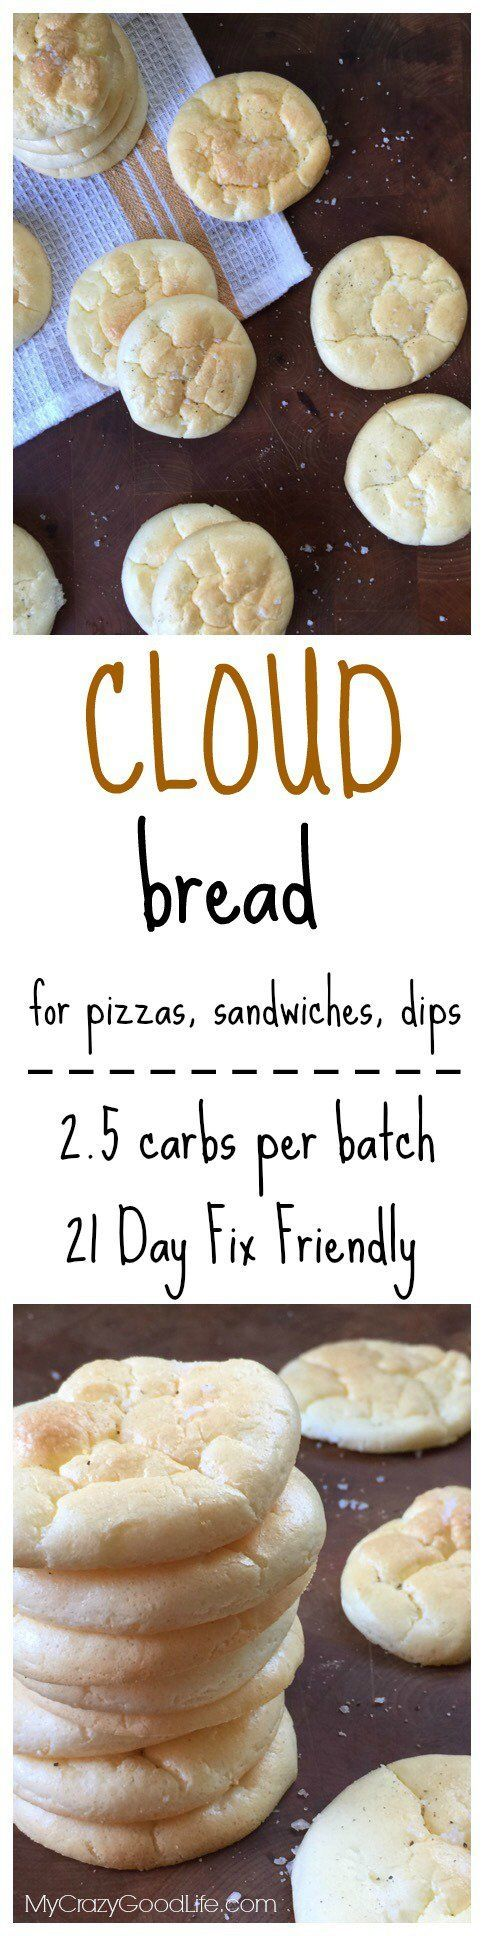 This low carb Cloud Bread has just 2.5 carbs per batchthat's about 15 cracker-sized pieces. It's great for those on a low carb diet, a gluten free diet, on the 21 Day Fix, or even just those who are trying to eat a bit less grain.